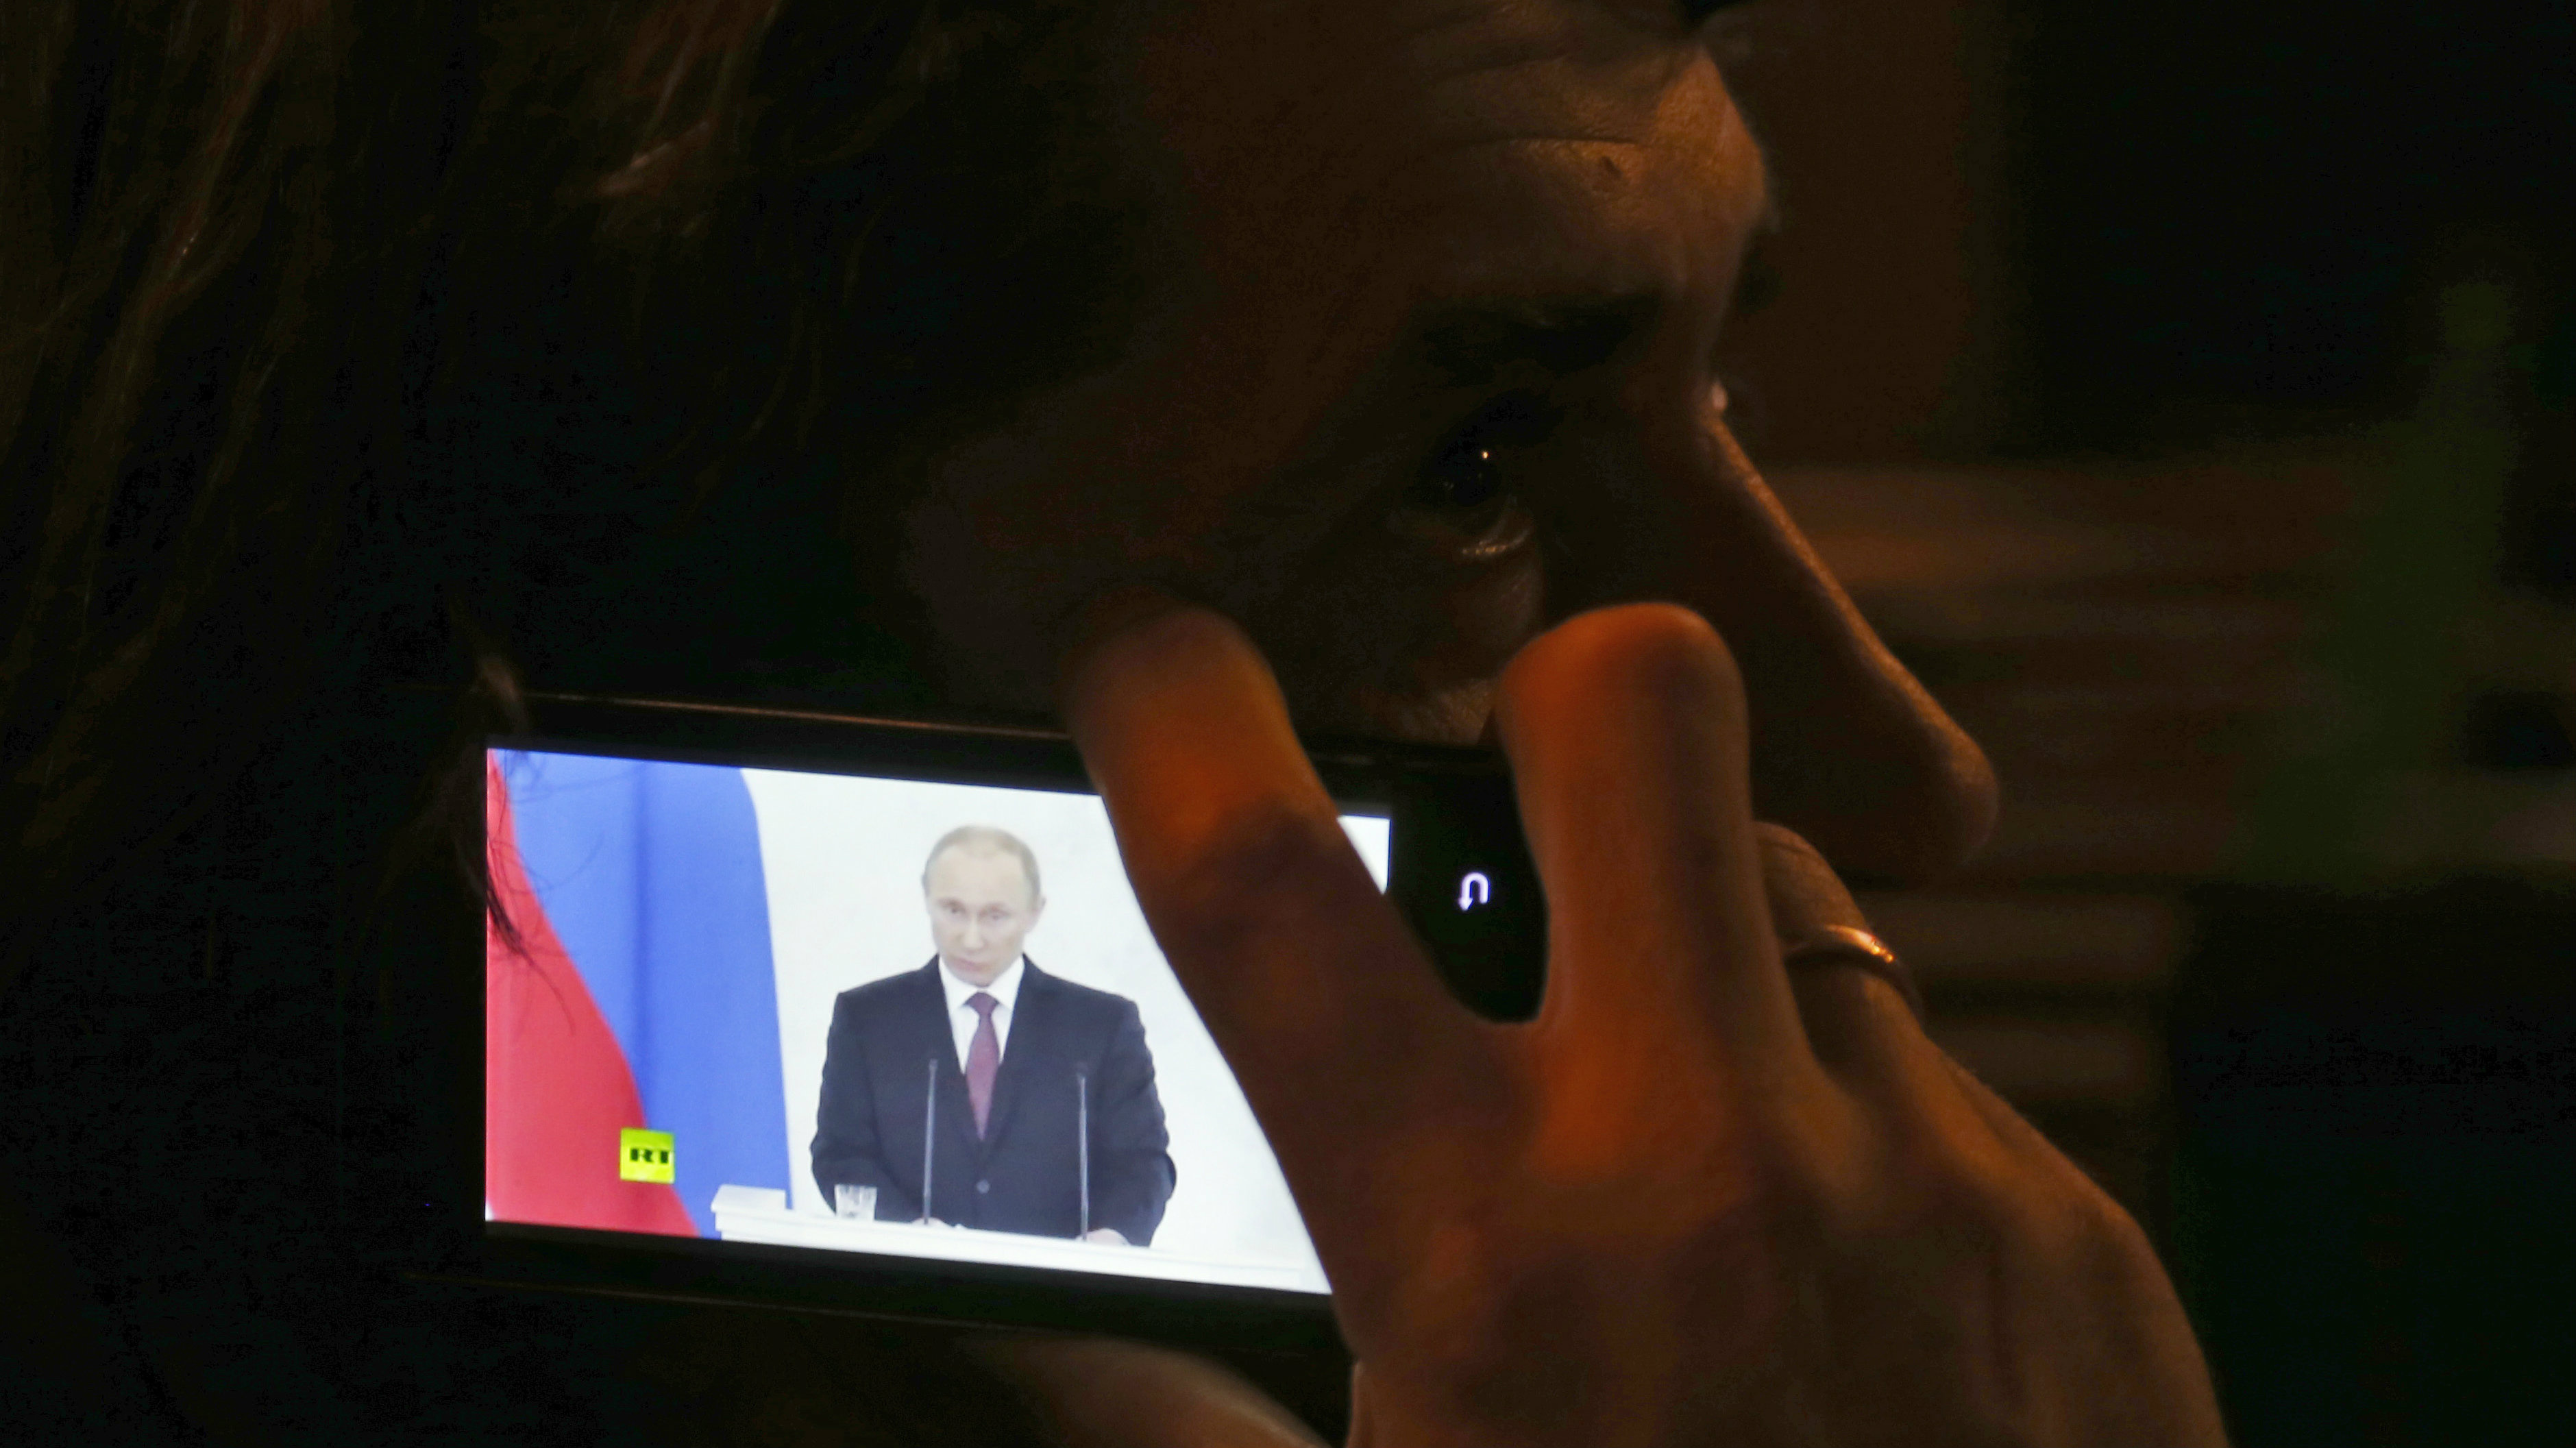 "A patron listens to Russian President Vladimir Putin deliver a statement with a mobile phone in a bar in Donetsk, Ukraine, Tuesday, March 18, 2014. Putin on Tuesday fiercely defended Russia's move to annex Crimea saying Crimea's vote on Sunday to join Russia was in line with ""democratic norms and international law."""